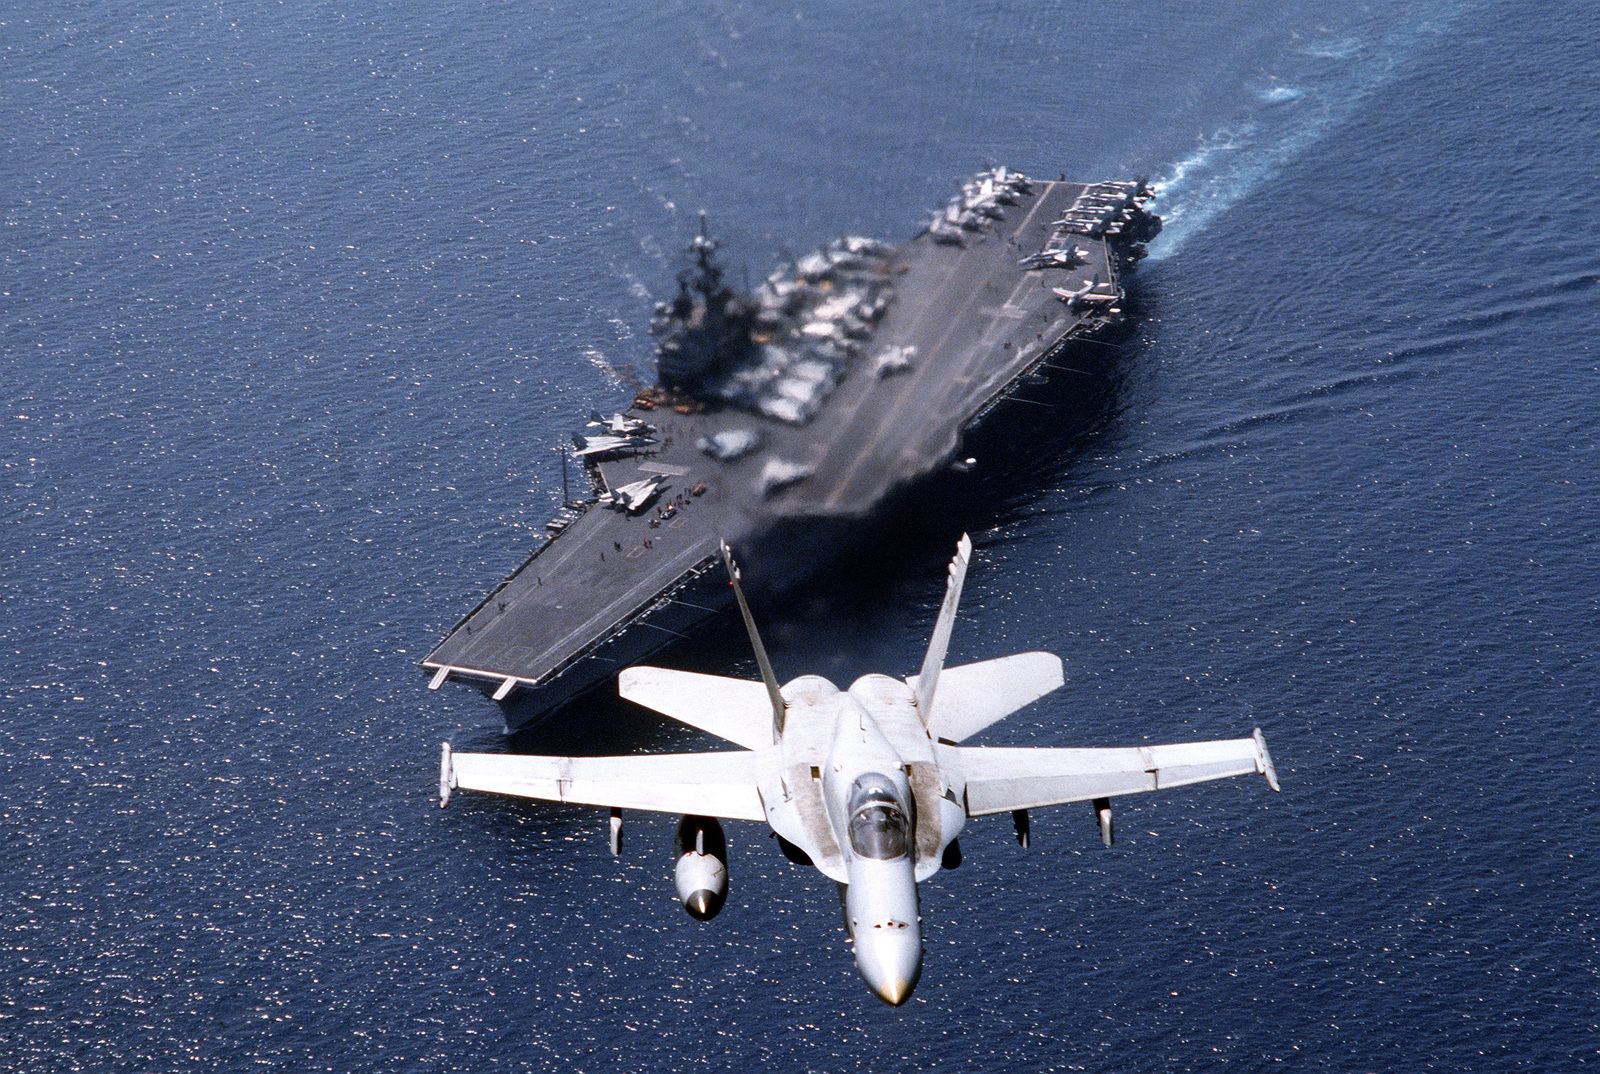 An aerial view of a F/A-18C Hornet aircraft of Strike Fighter Squadron Seventy-Four (VFA-74) in flight over the Forrestal Class, Aircraft Carrier USS SARATOGA (CV 60) during Operation Desert Shield. Other F/A-18Cs as well as F-14A Tomcats and A-6E Intruders are seen aboard the flight desk of the SARATOGA